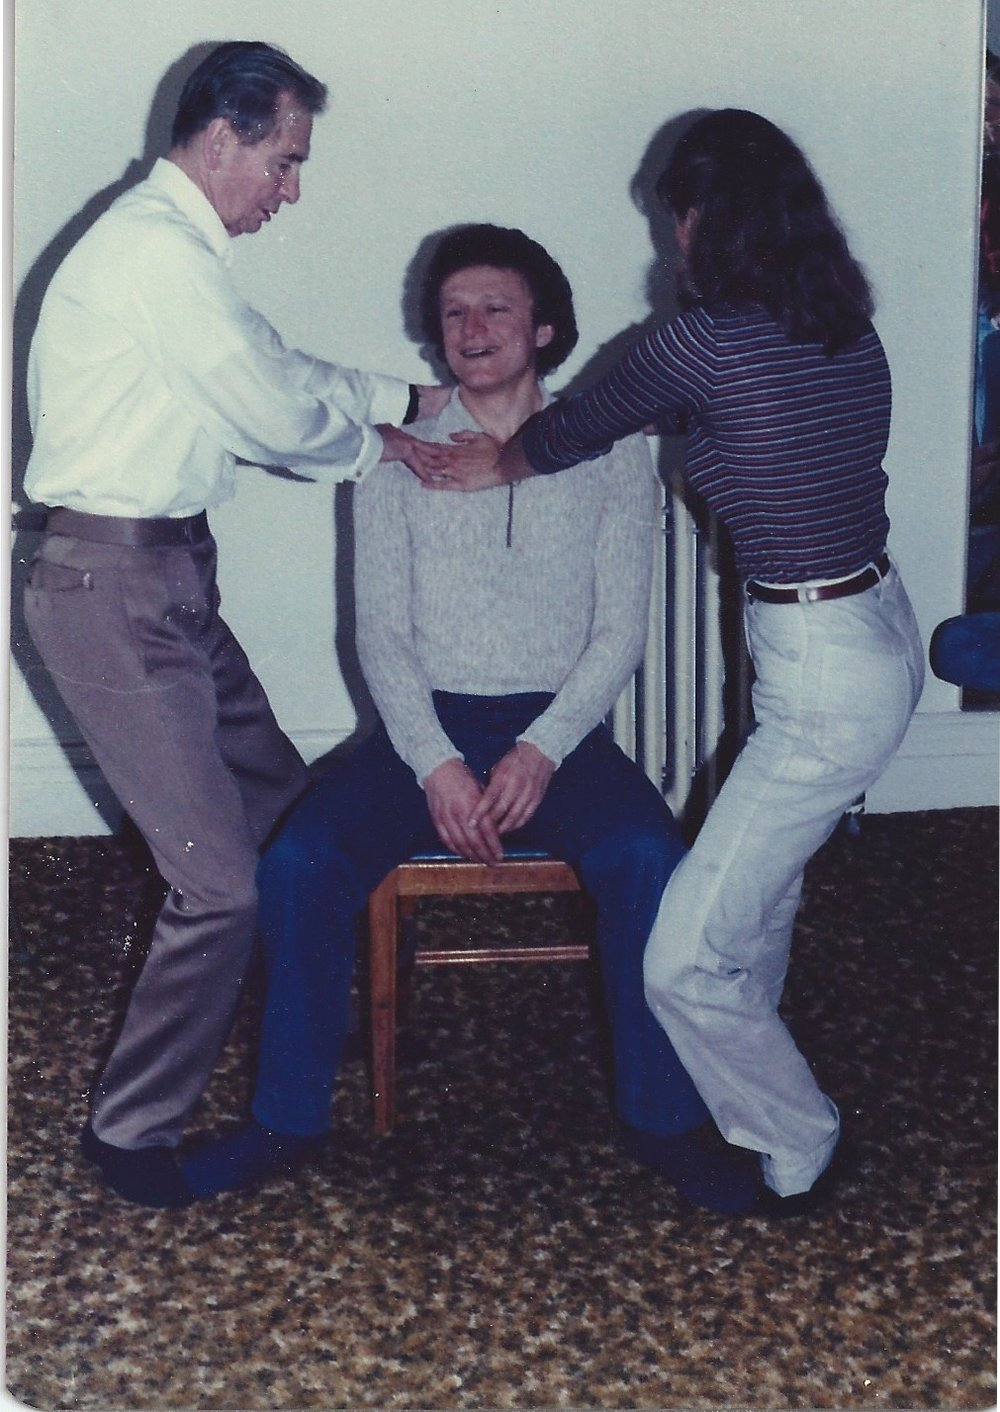 Patrick Macdonald teaching Pamela, 1979